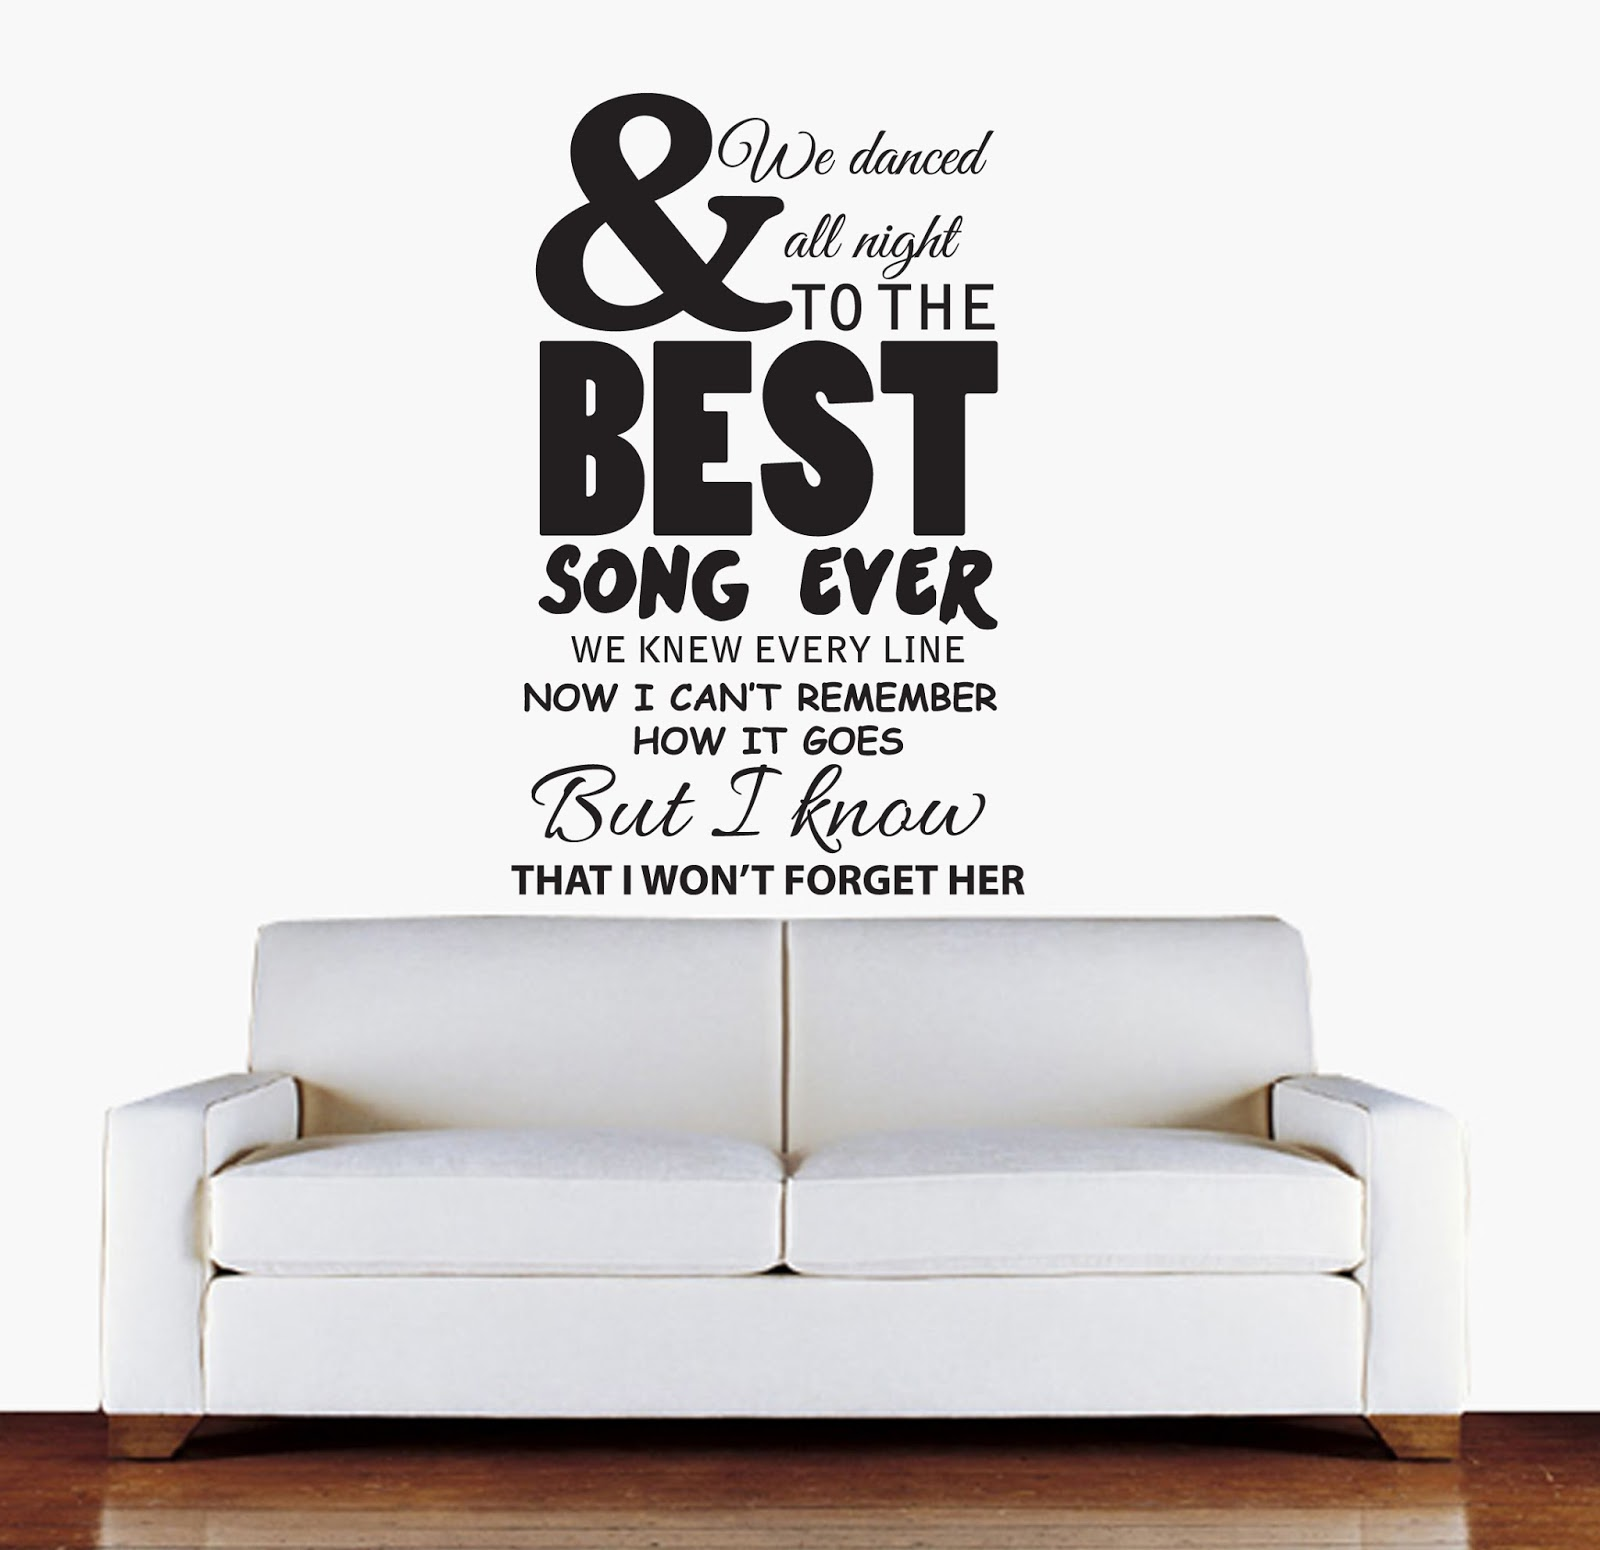 sophie jenner wall stickers 1d one direction lyrics snow patrol wall art lyrics wall stickers